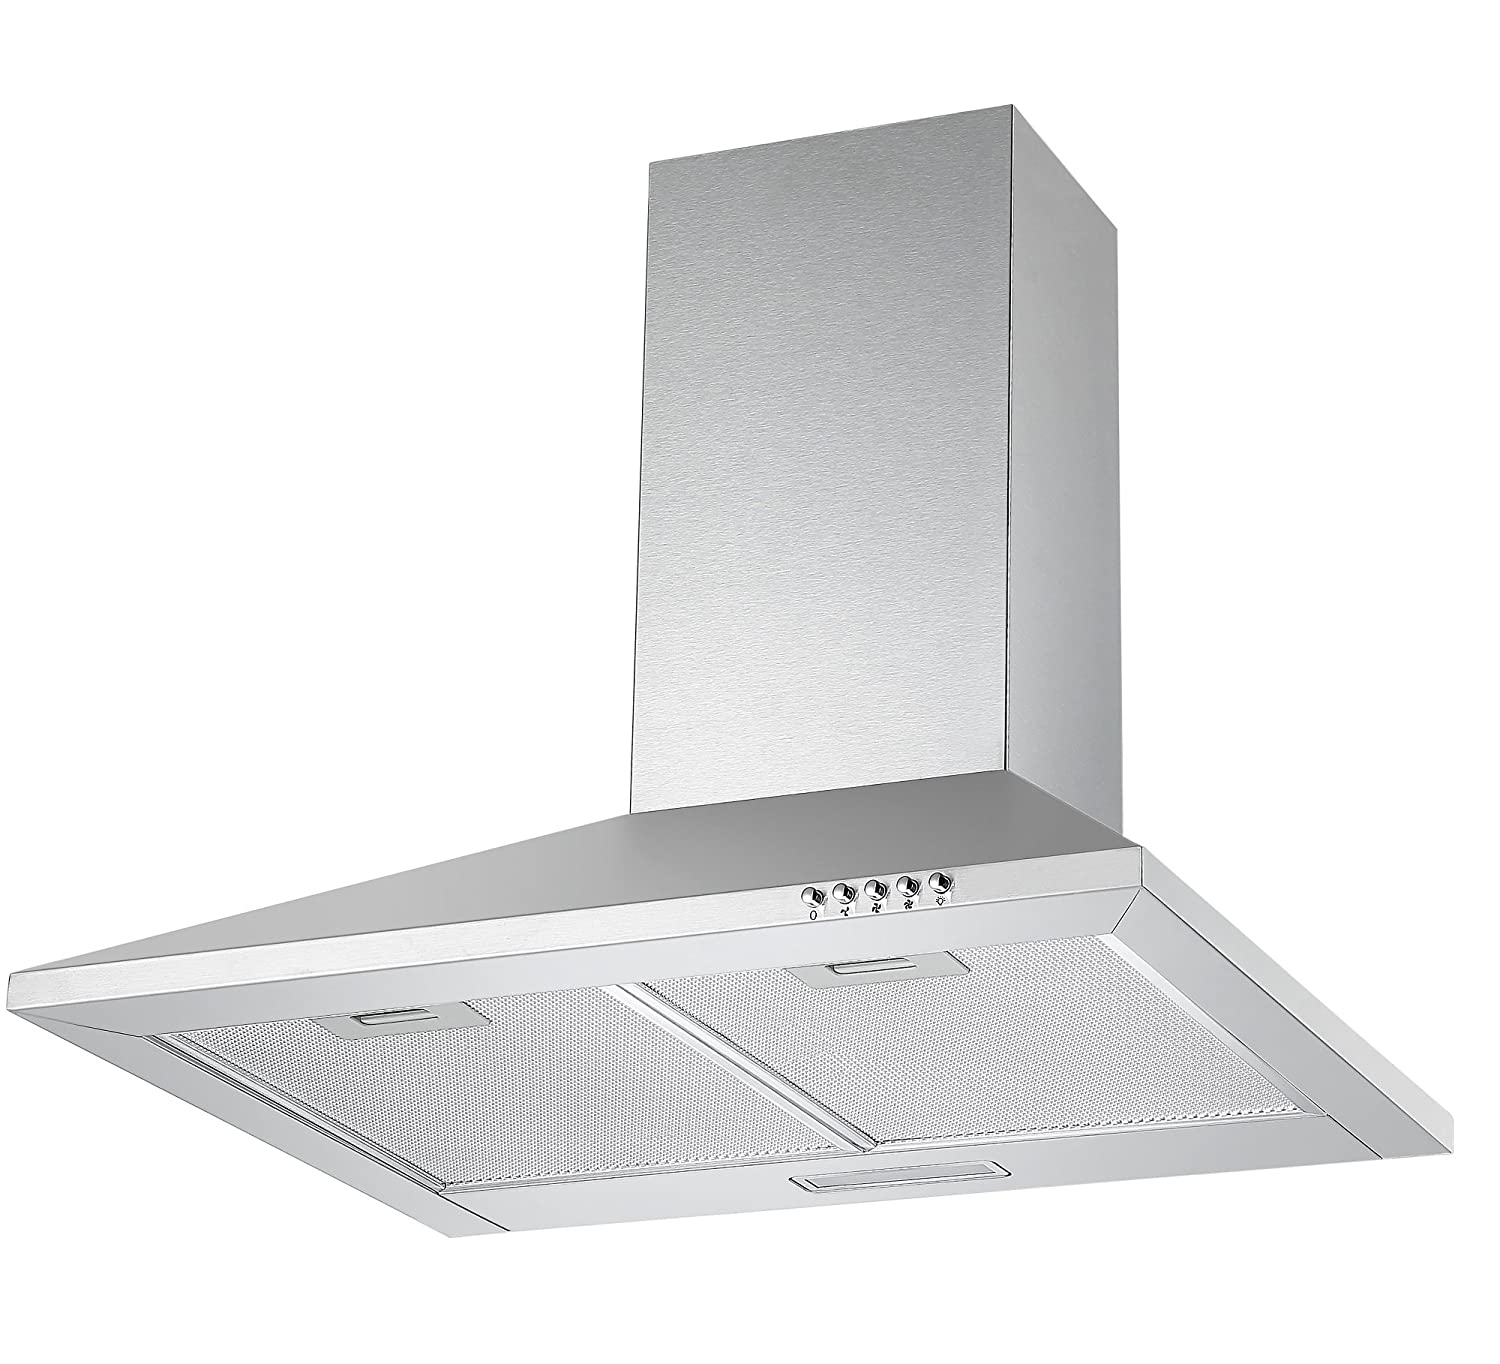 Cookology Unbranded CH600SS 60cm Chimney Cooker Hood in Stainless Steel | Extractor Fan [Energy Class C]